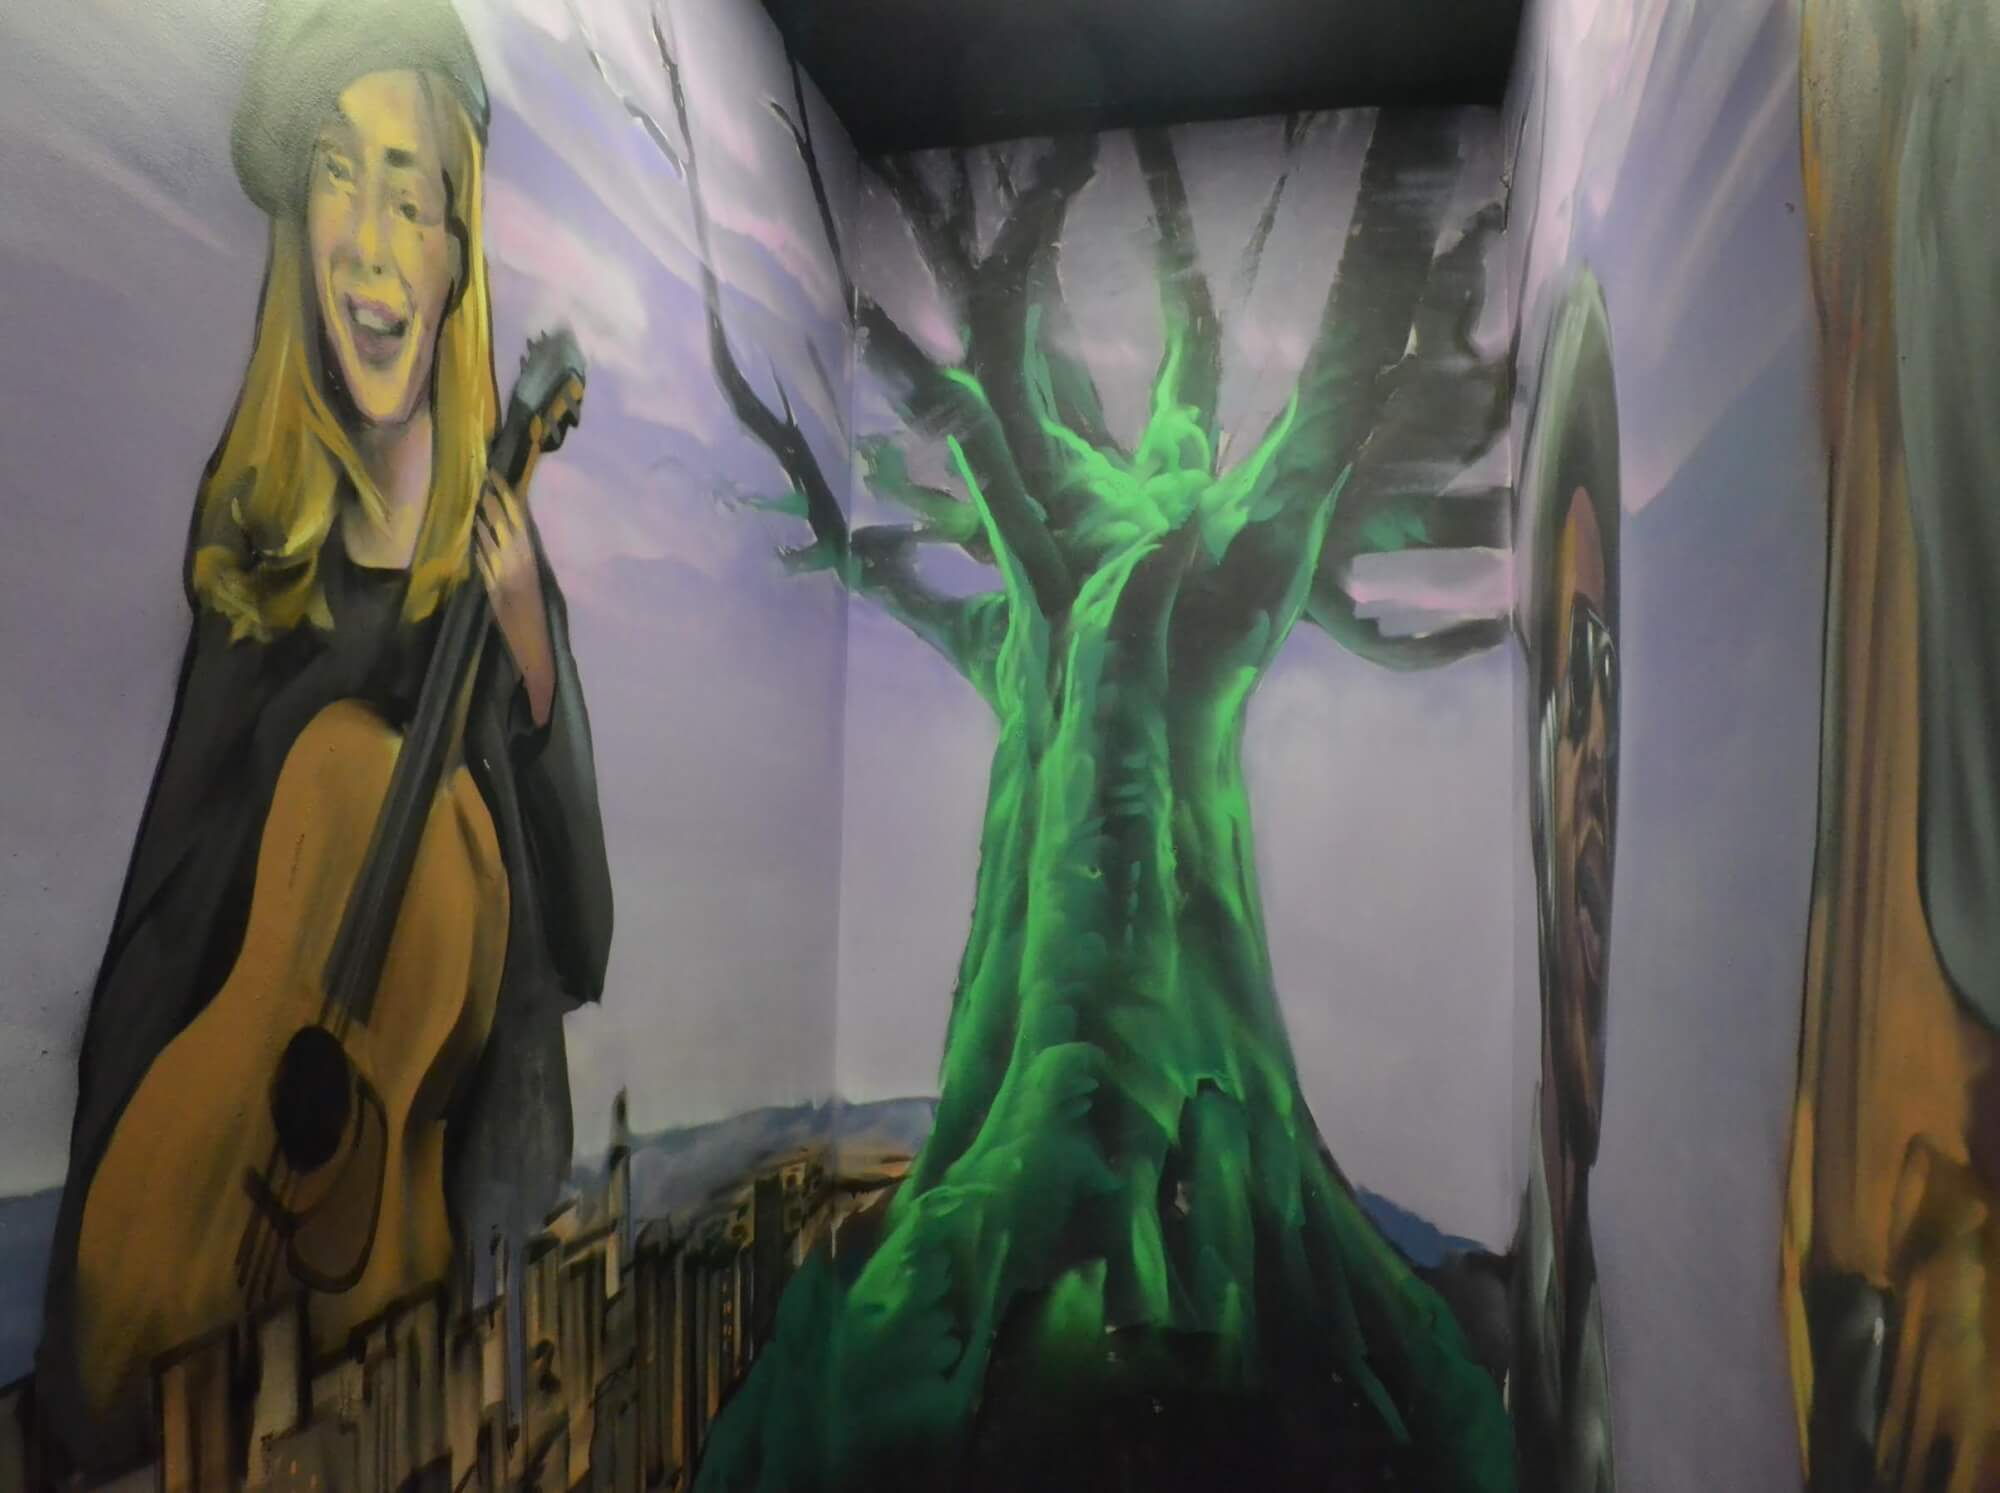 The outside of our venue space overlooks a mural of Joni Mitchell and the Tree of Life.